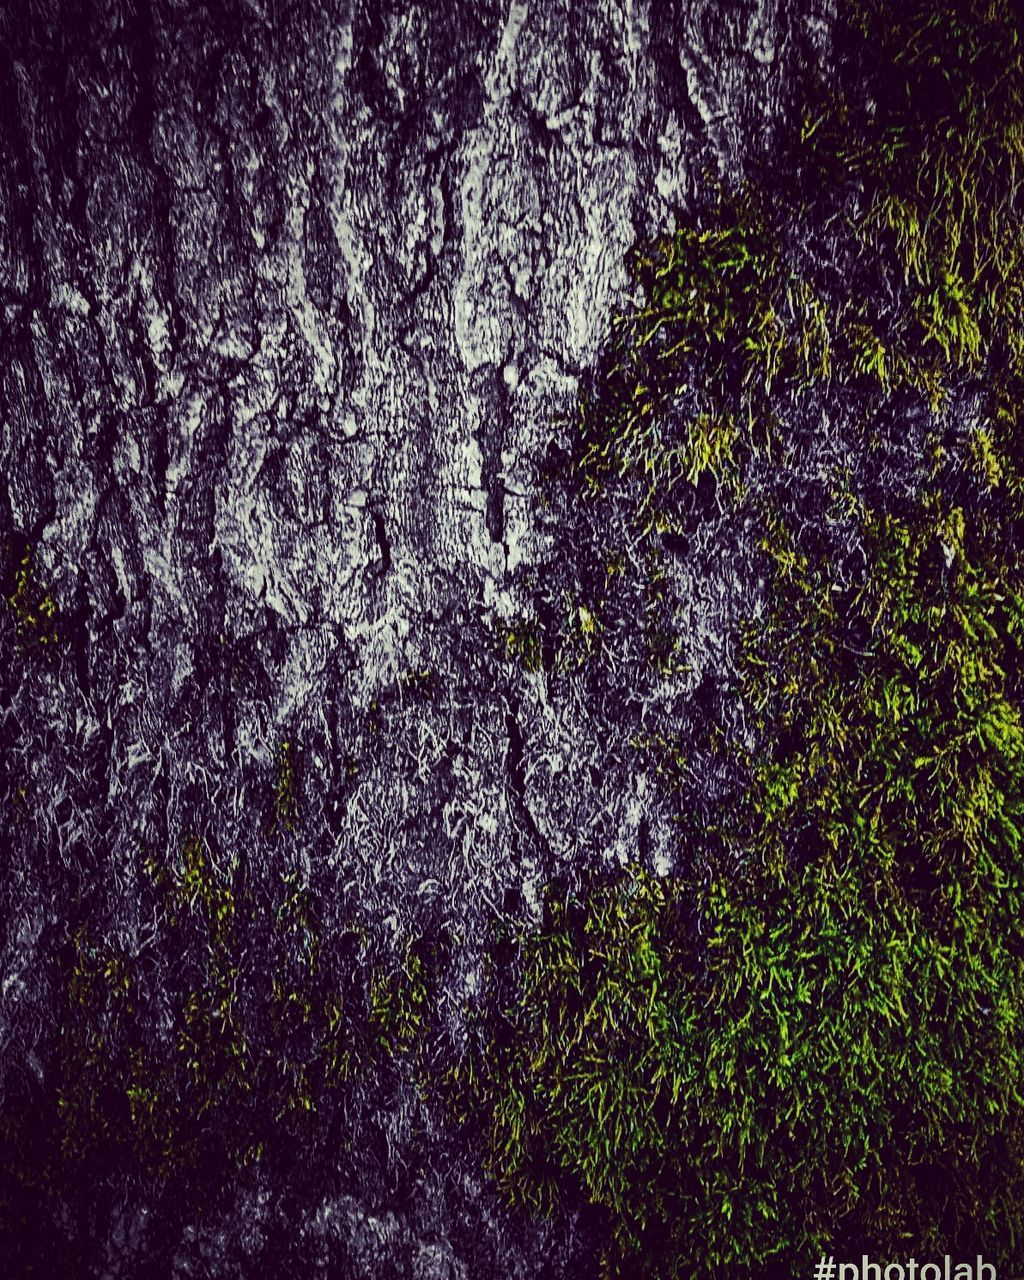 full frame, tree, backgrounds, growth, textured, nature, no people, tree trunk, ivy, outdoors, close-up, plant, day, beauty in nature, freshness